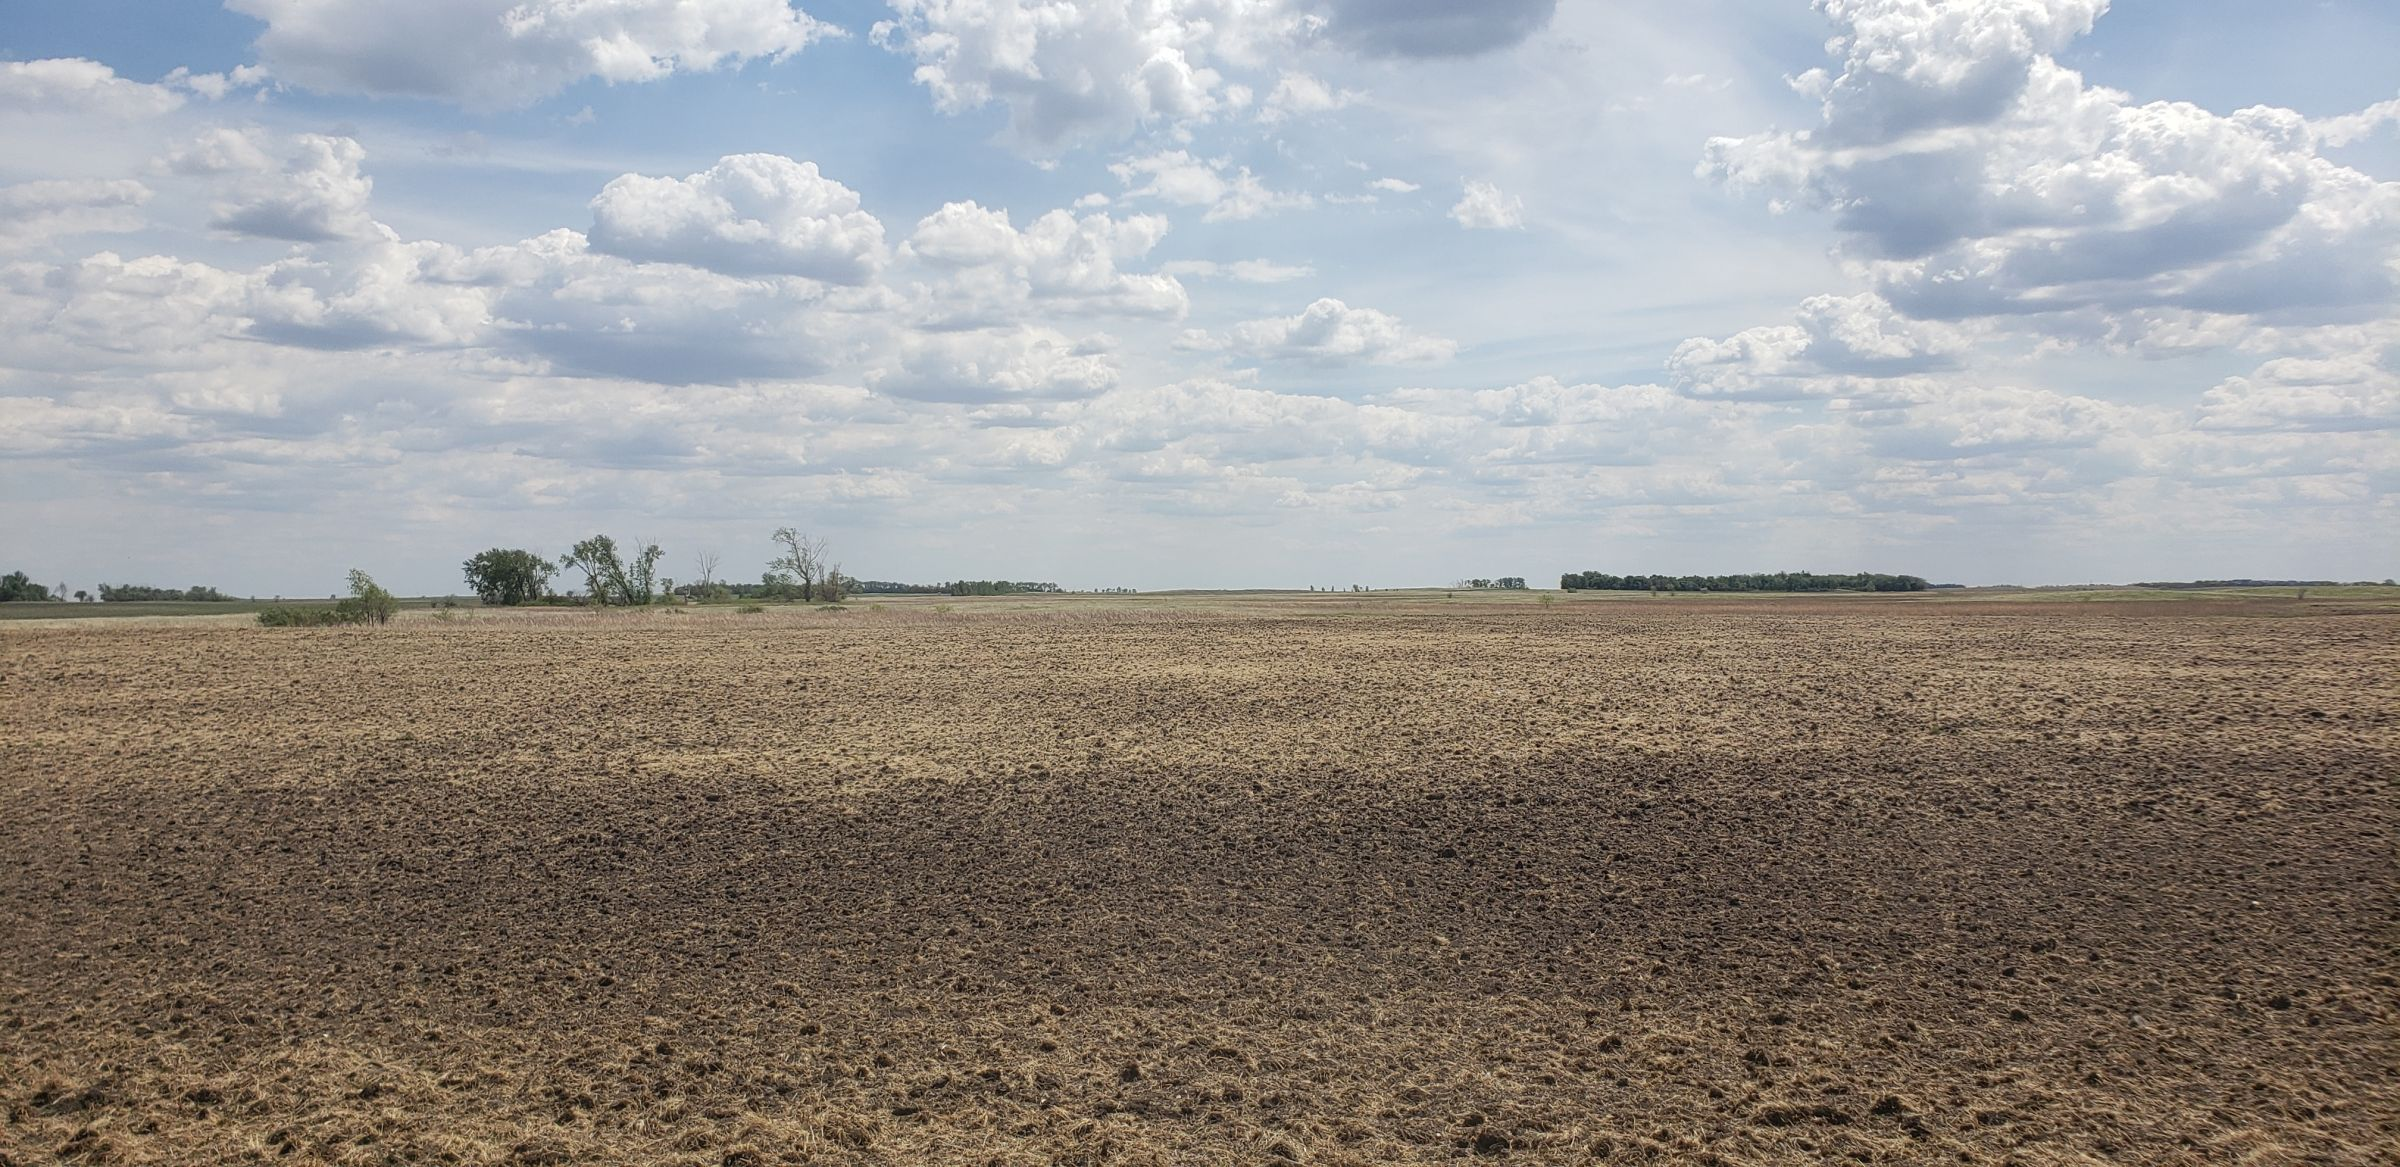 auctions-cass-county-north-dakota-320-acres-listing-number-15590-1-2021-06-22-191129.jpg